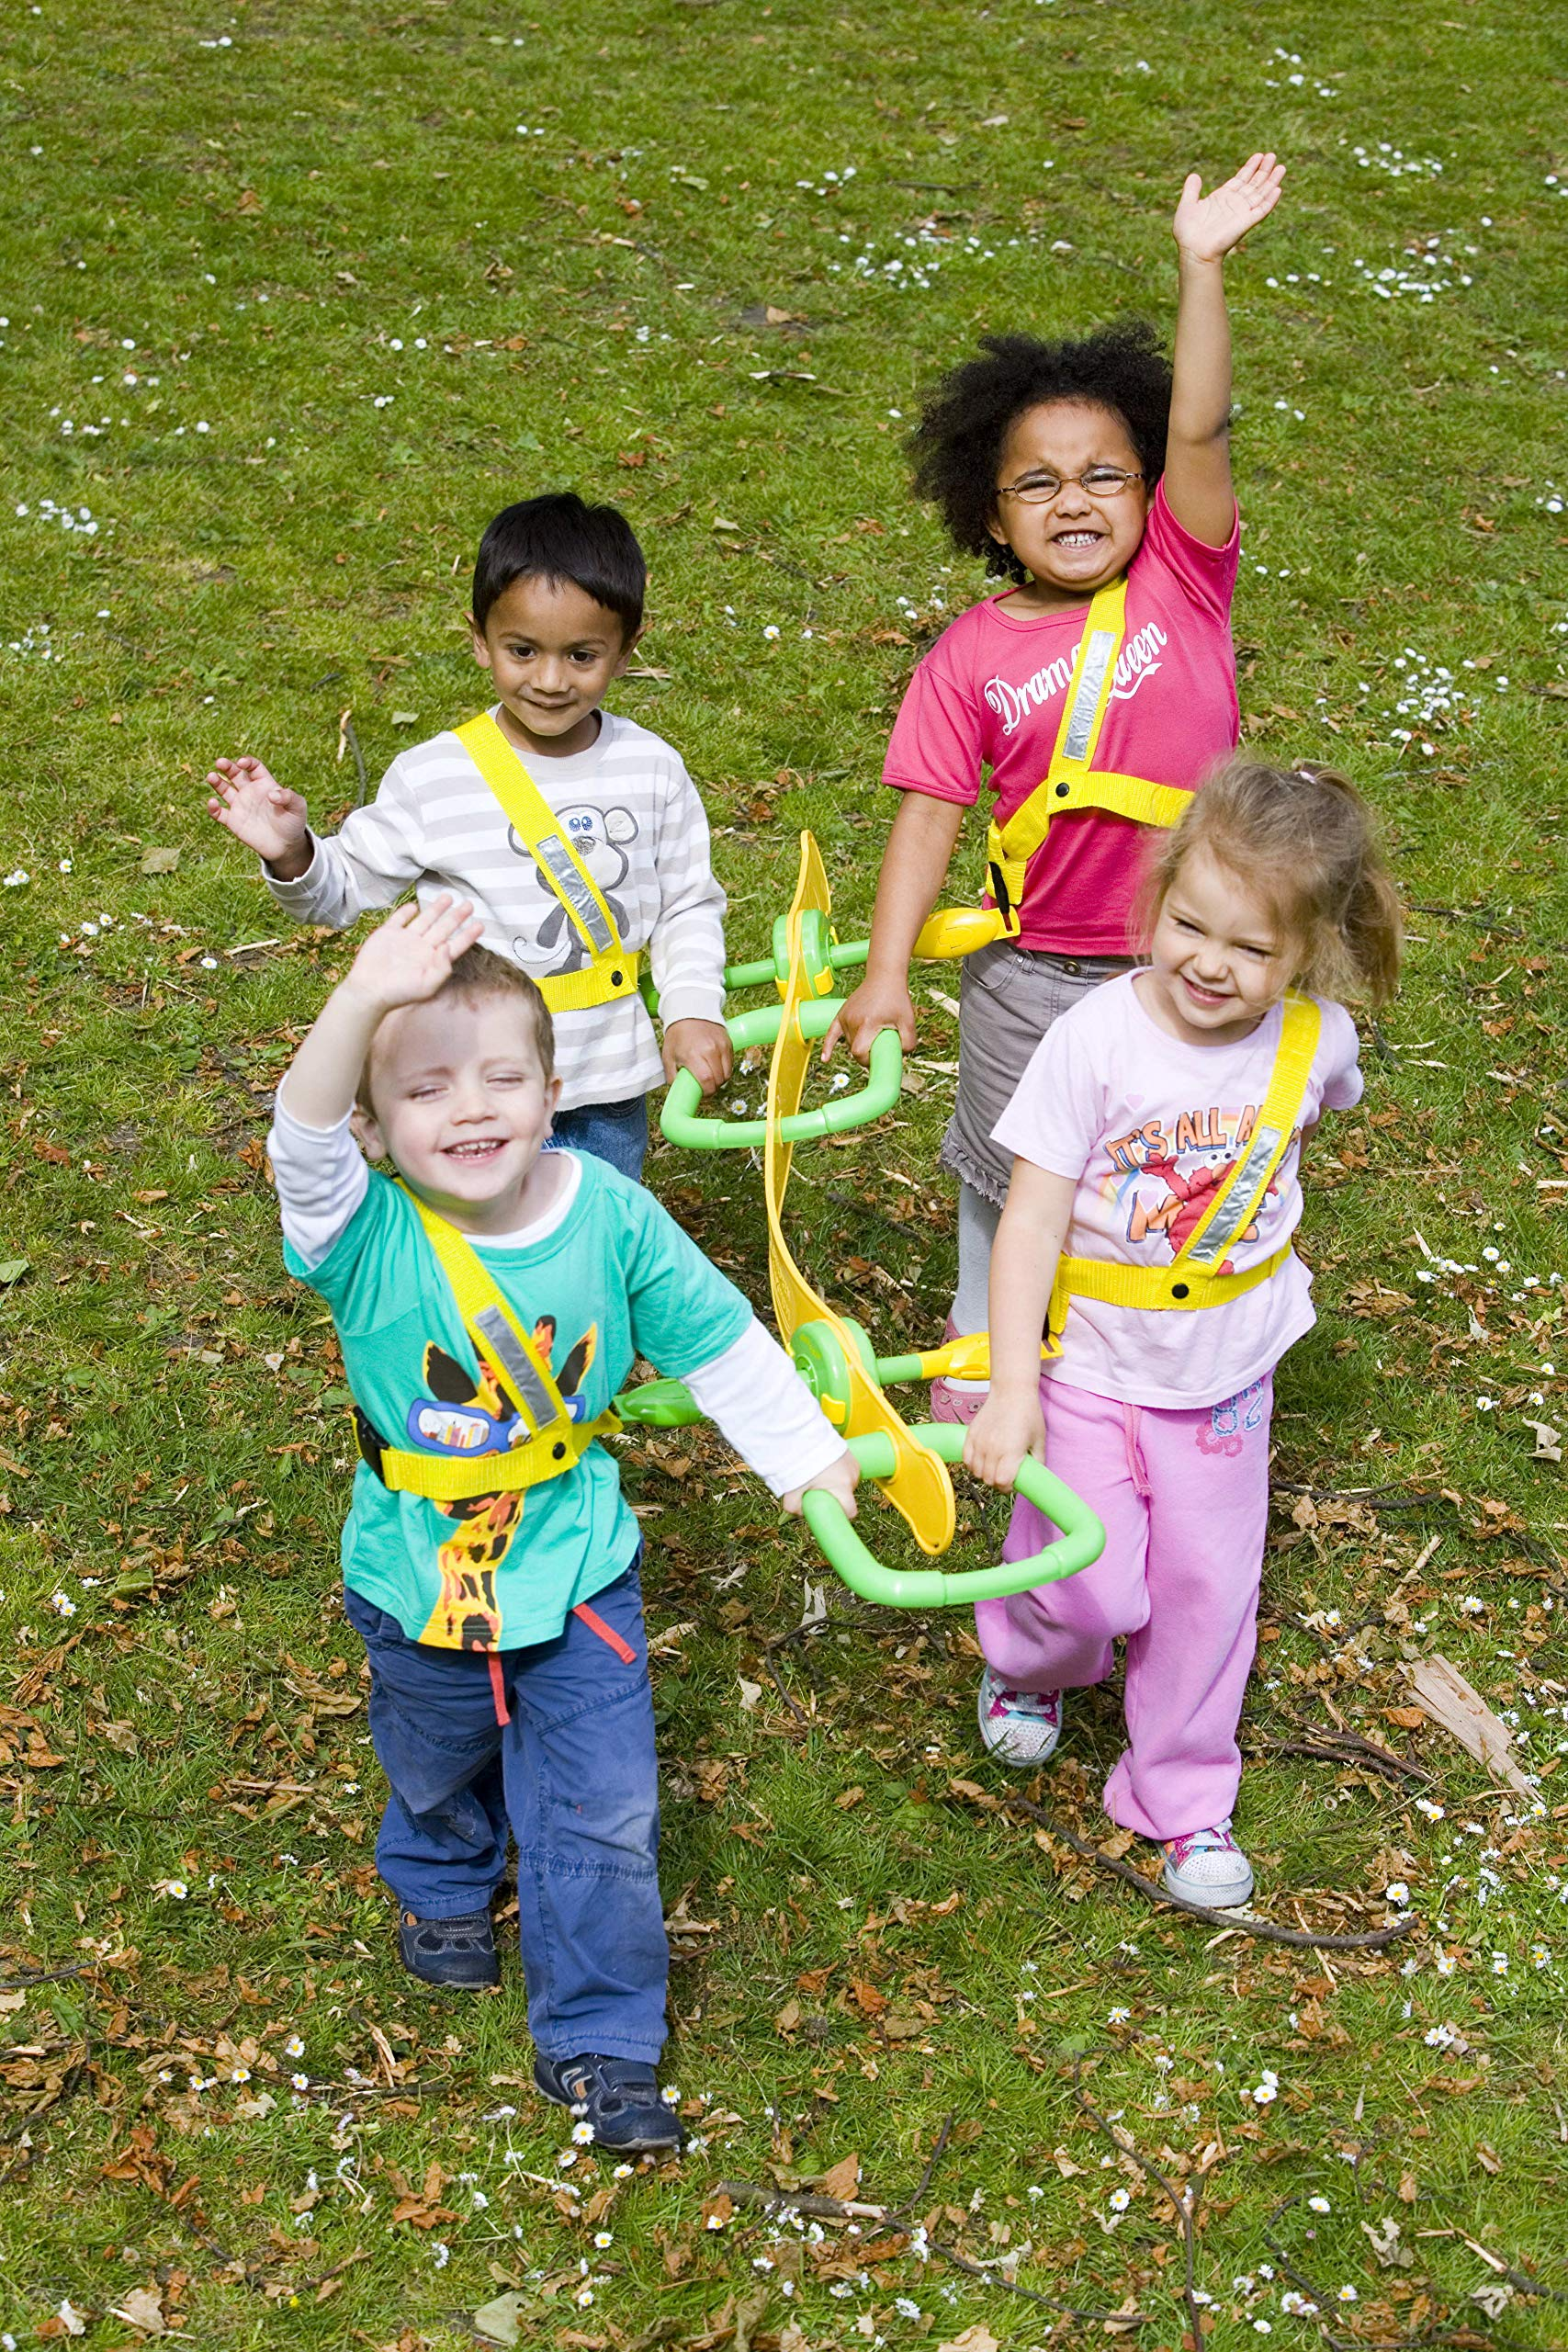 Walkodile Quattro (4 Child) - Kids Walking Rope, Childrens Reins, Toddler Safety Harness. Includes Free Learning Games for Walks Guide